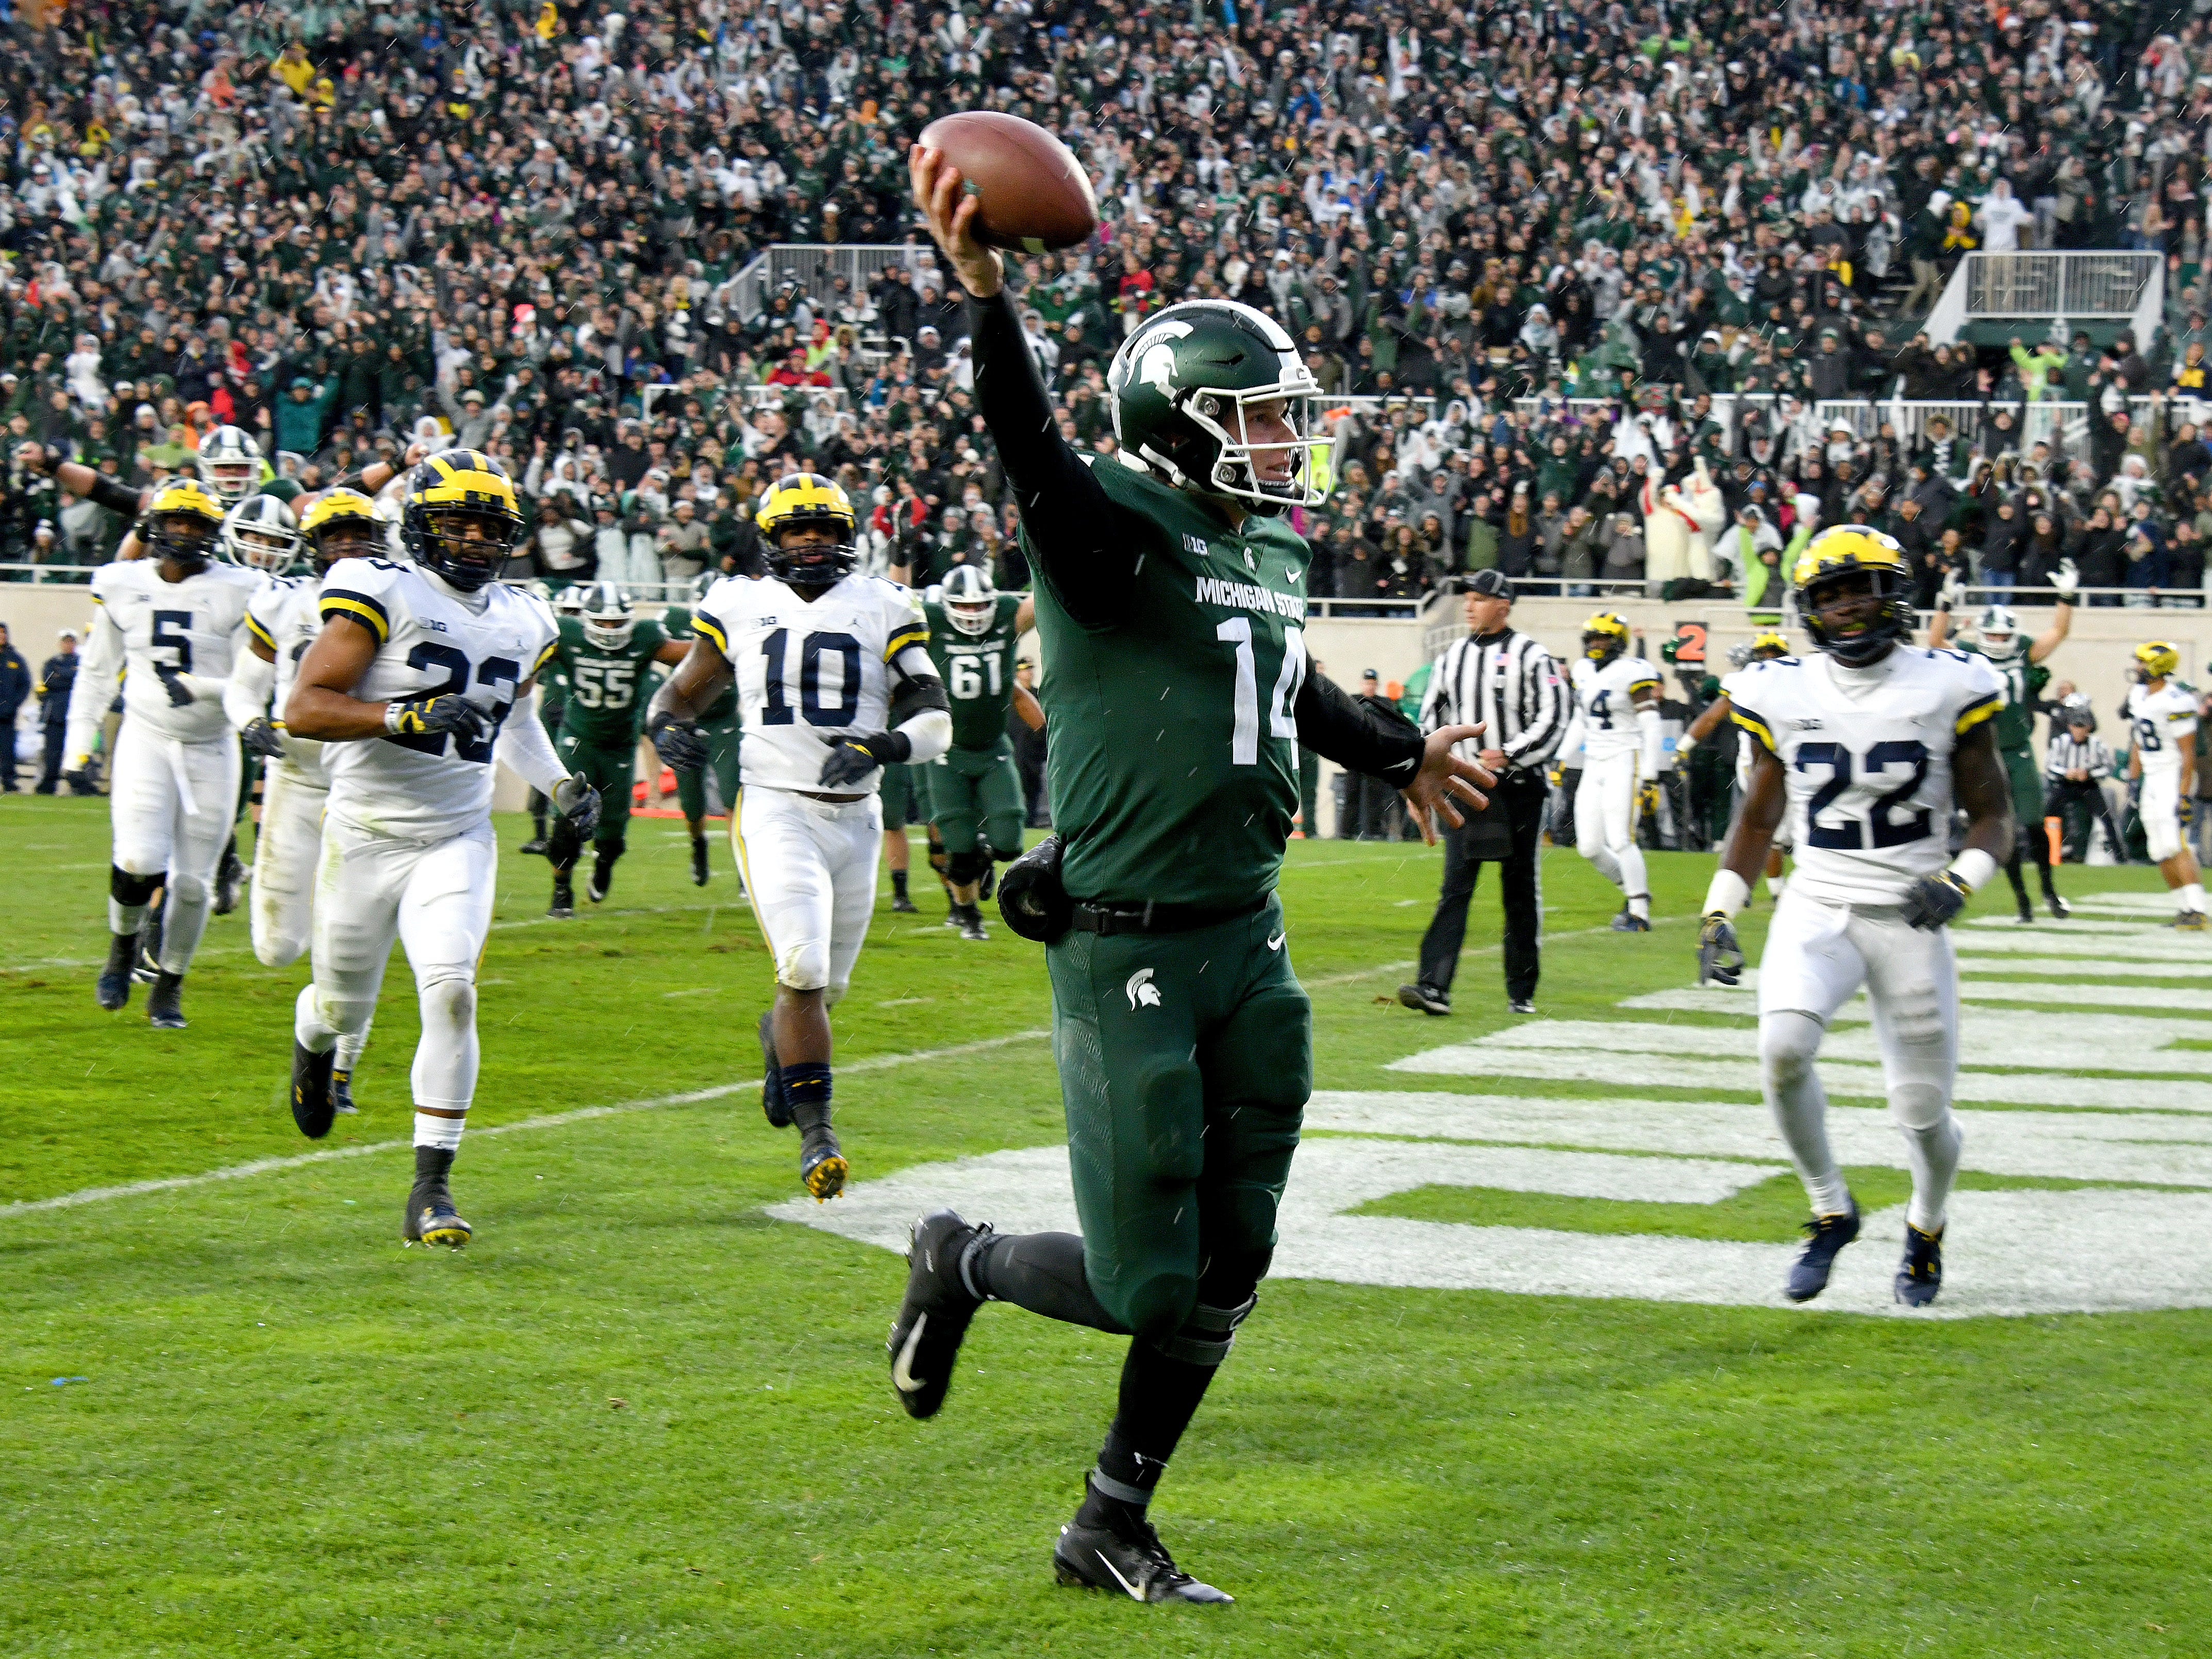 In one of the few Spartans bright moments, MSU quarterback Brian Lewerke holds the ball aloft after catching a touchdown pass in the third quarter against Michigan. The Wolverines had the last laugh, however, reclaiming the Paul Bunyan trophy with a 21-7 victory at Spartan Stadium on Saturday, Oct 20, 2018.